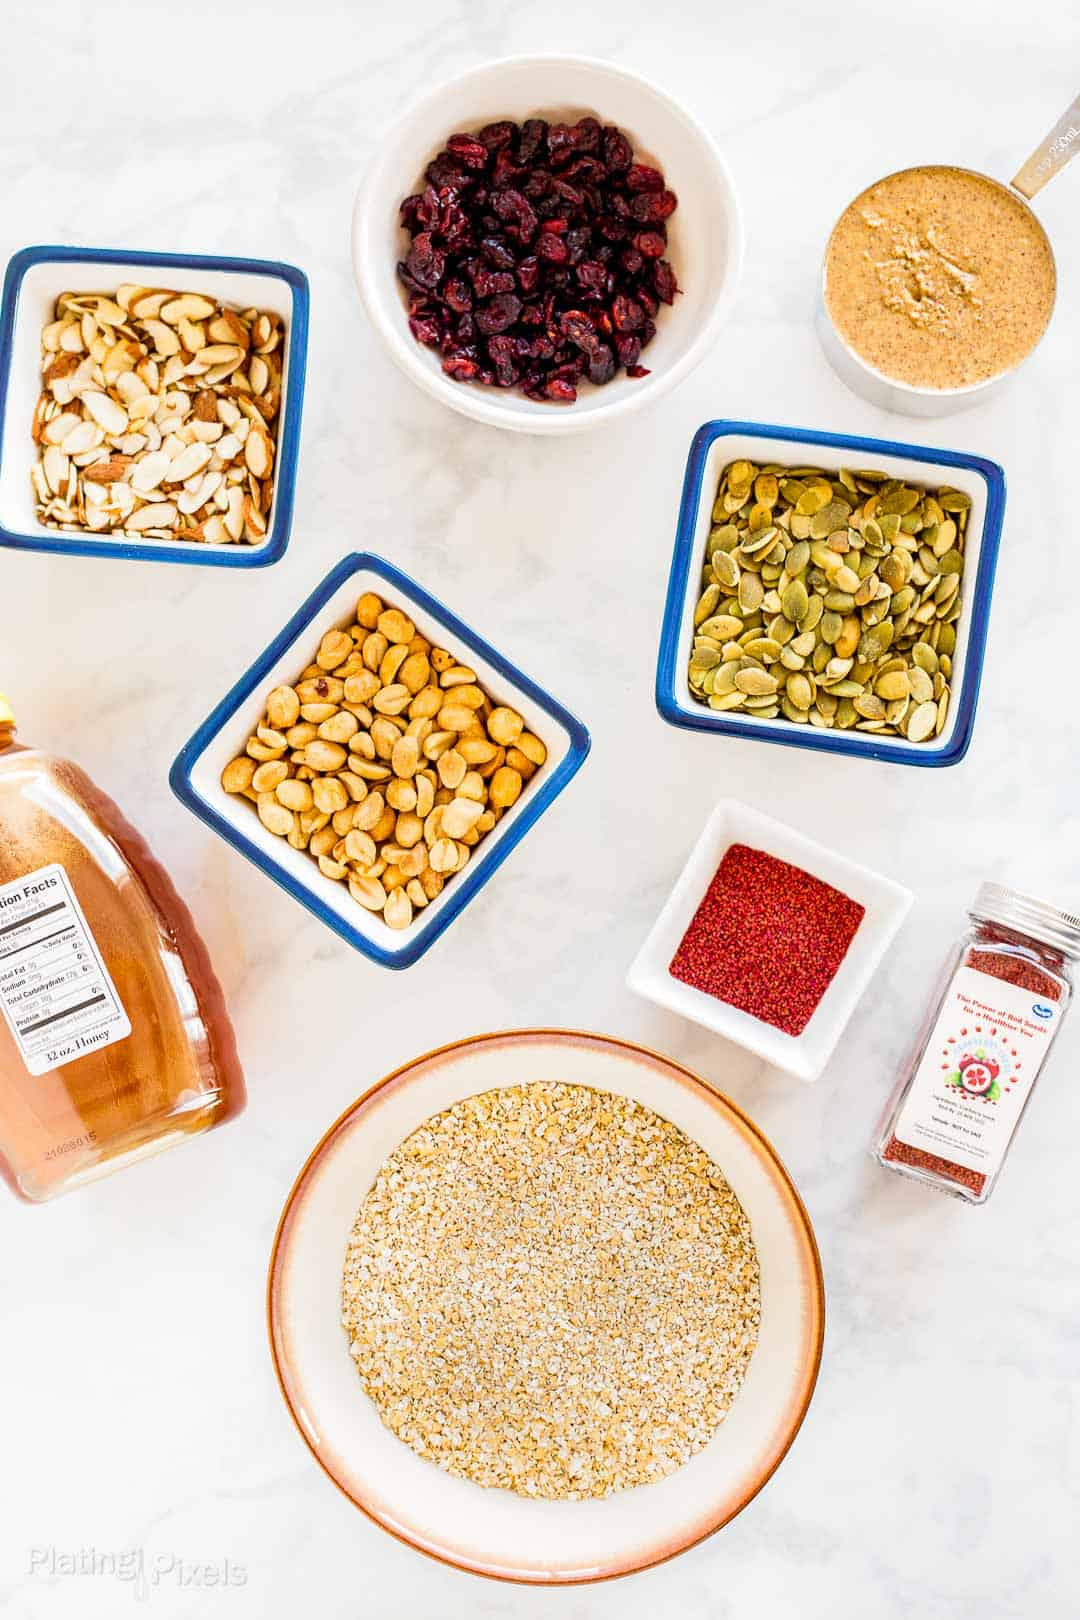 Ingredients for Cranberry Almond Granola Bars prepared on a counter